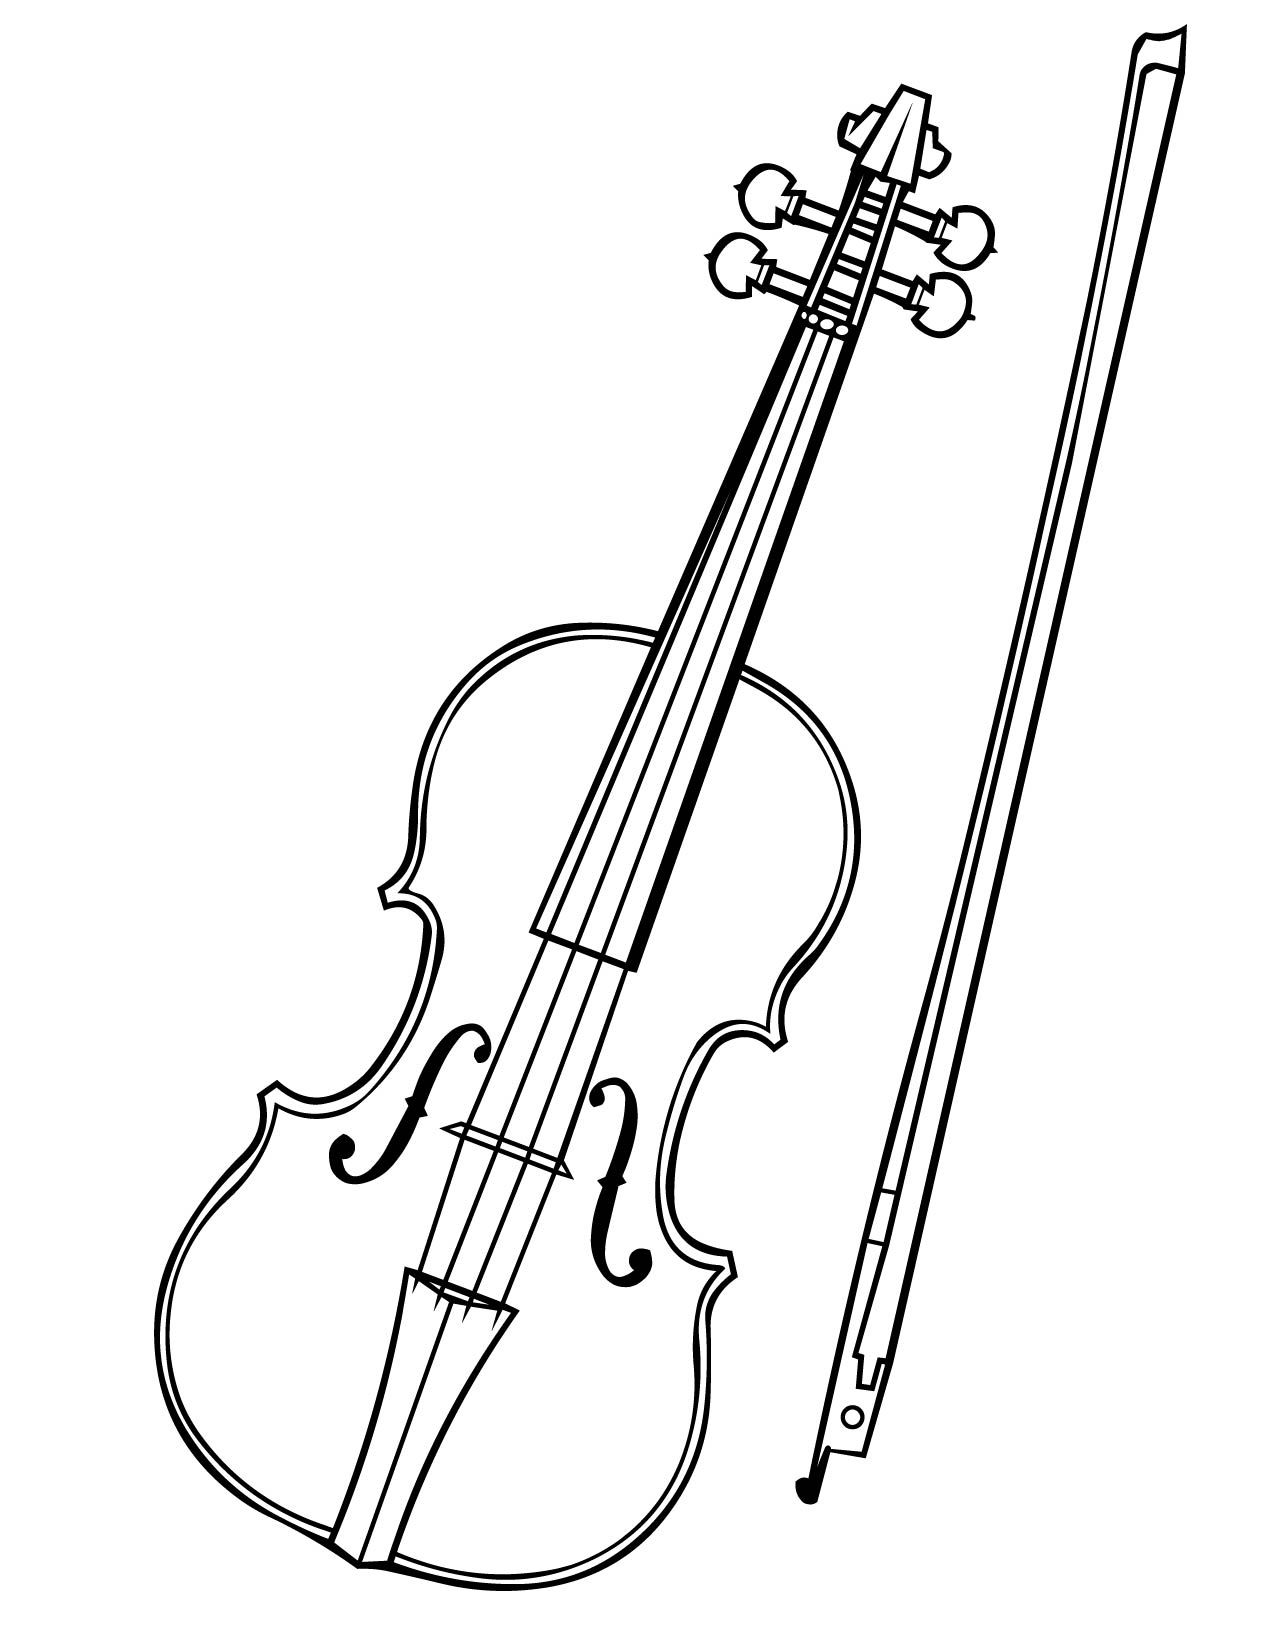 Find this pin and more on projects print and color a violin coloring book